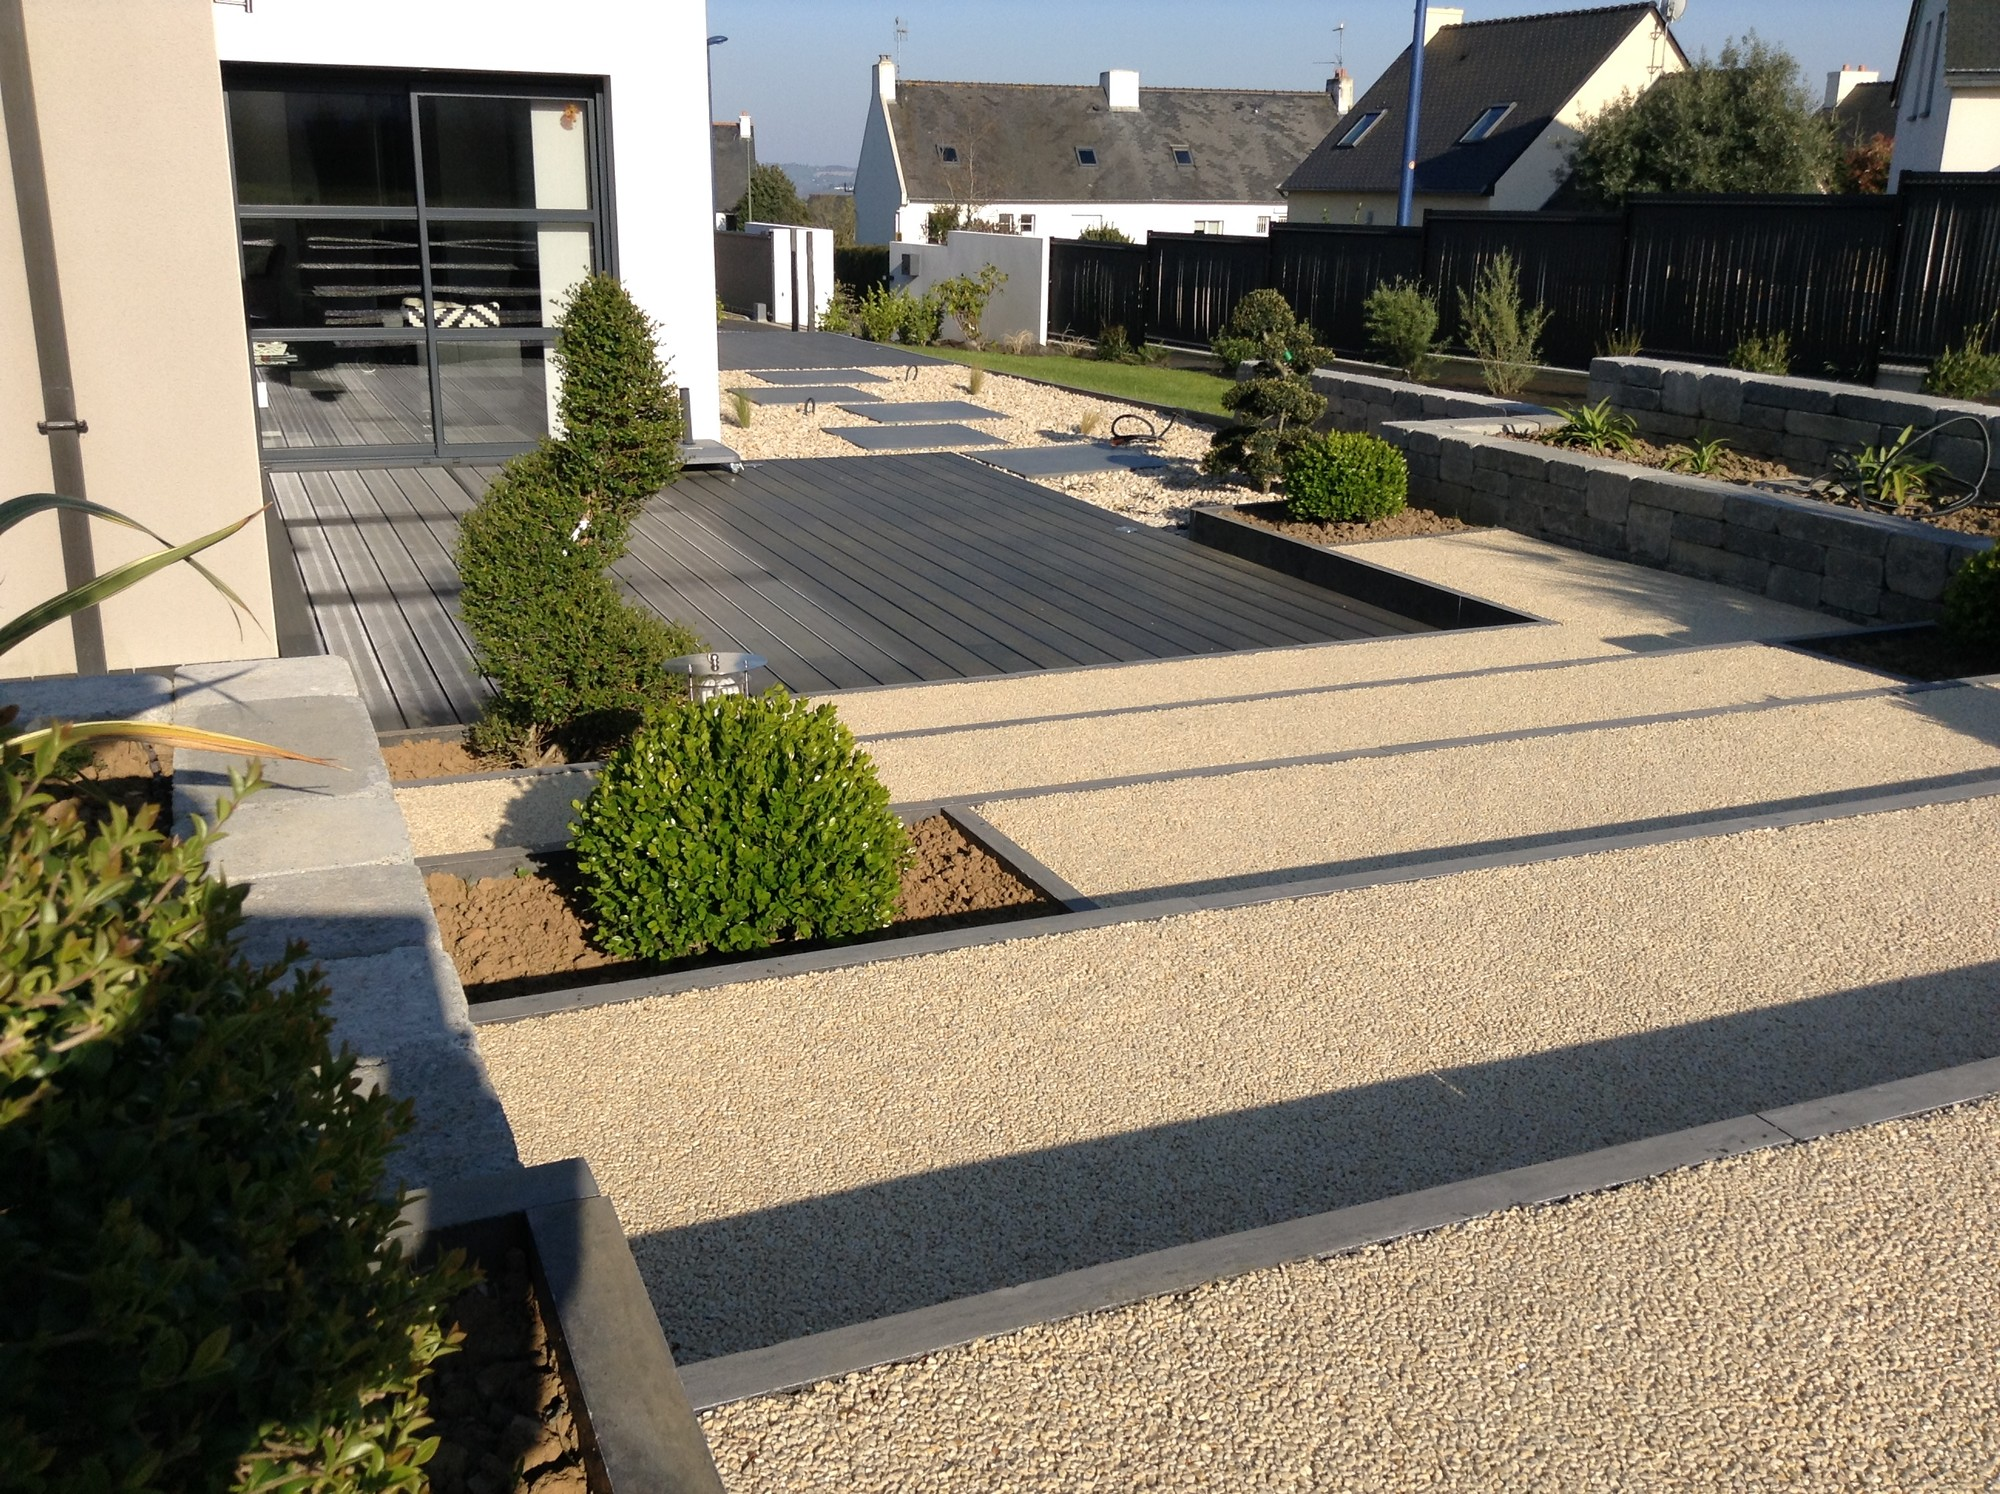 Am nagement du jardin en pente terrasses stationnement for Amenagement entree jardin